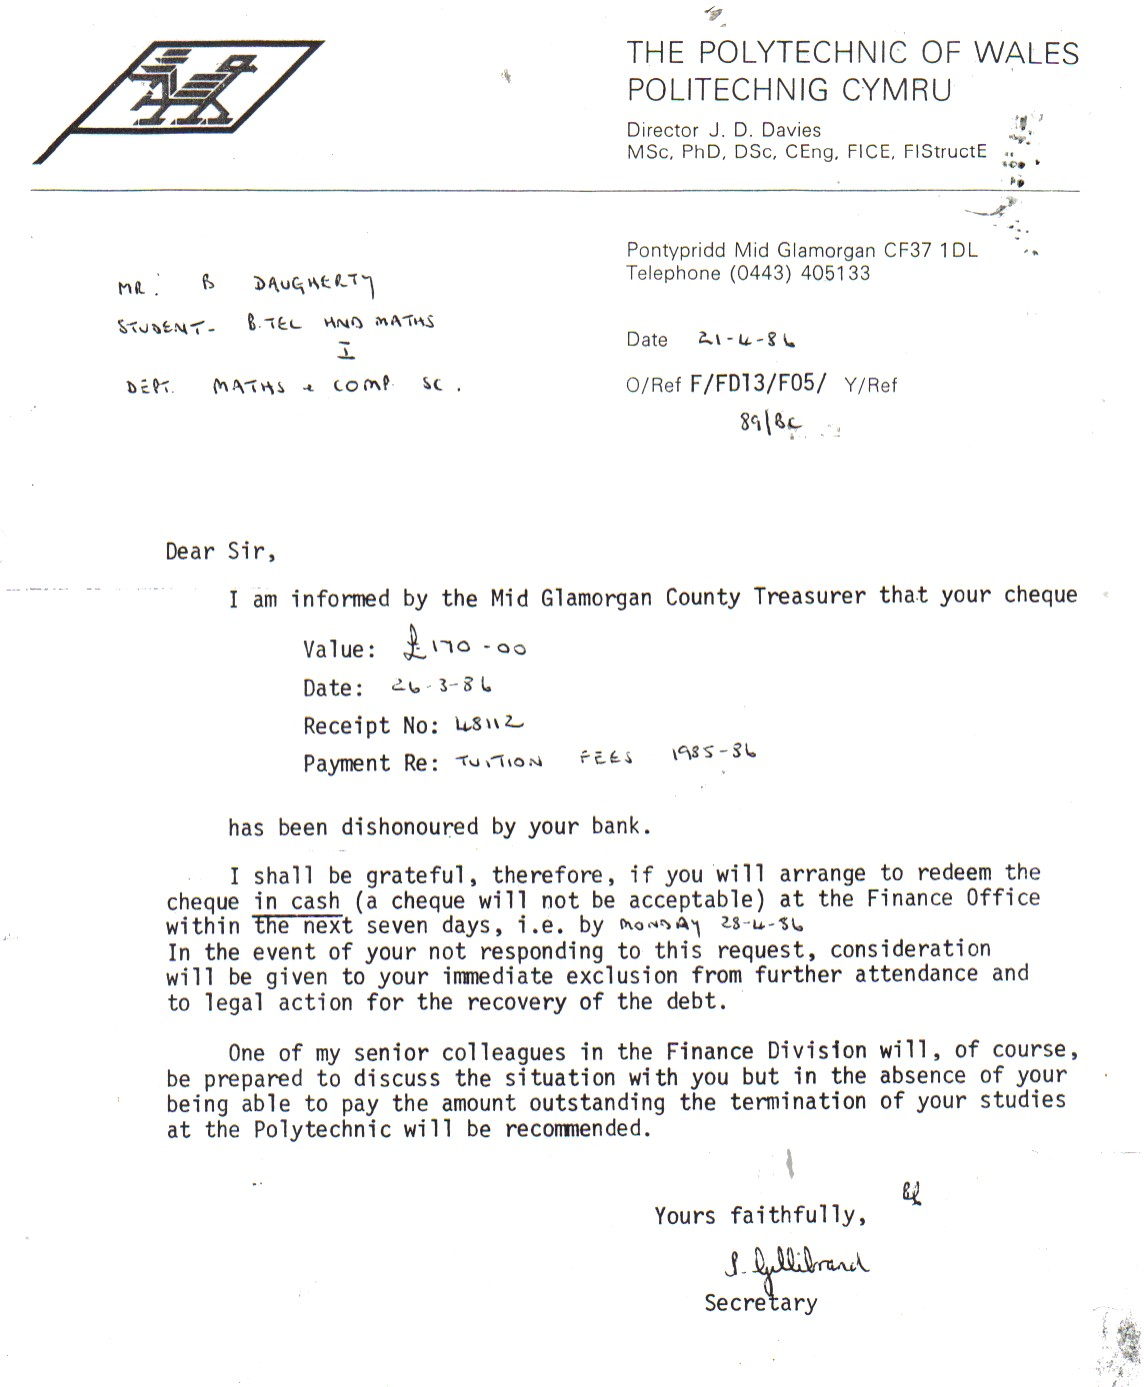 Letter from the Polytechnic of Wales